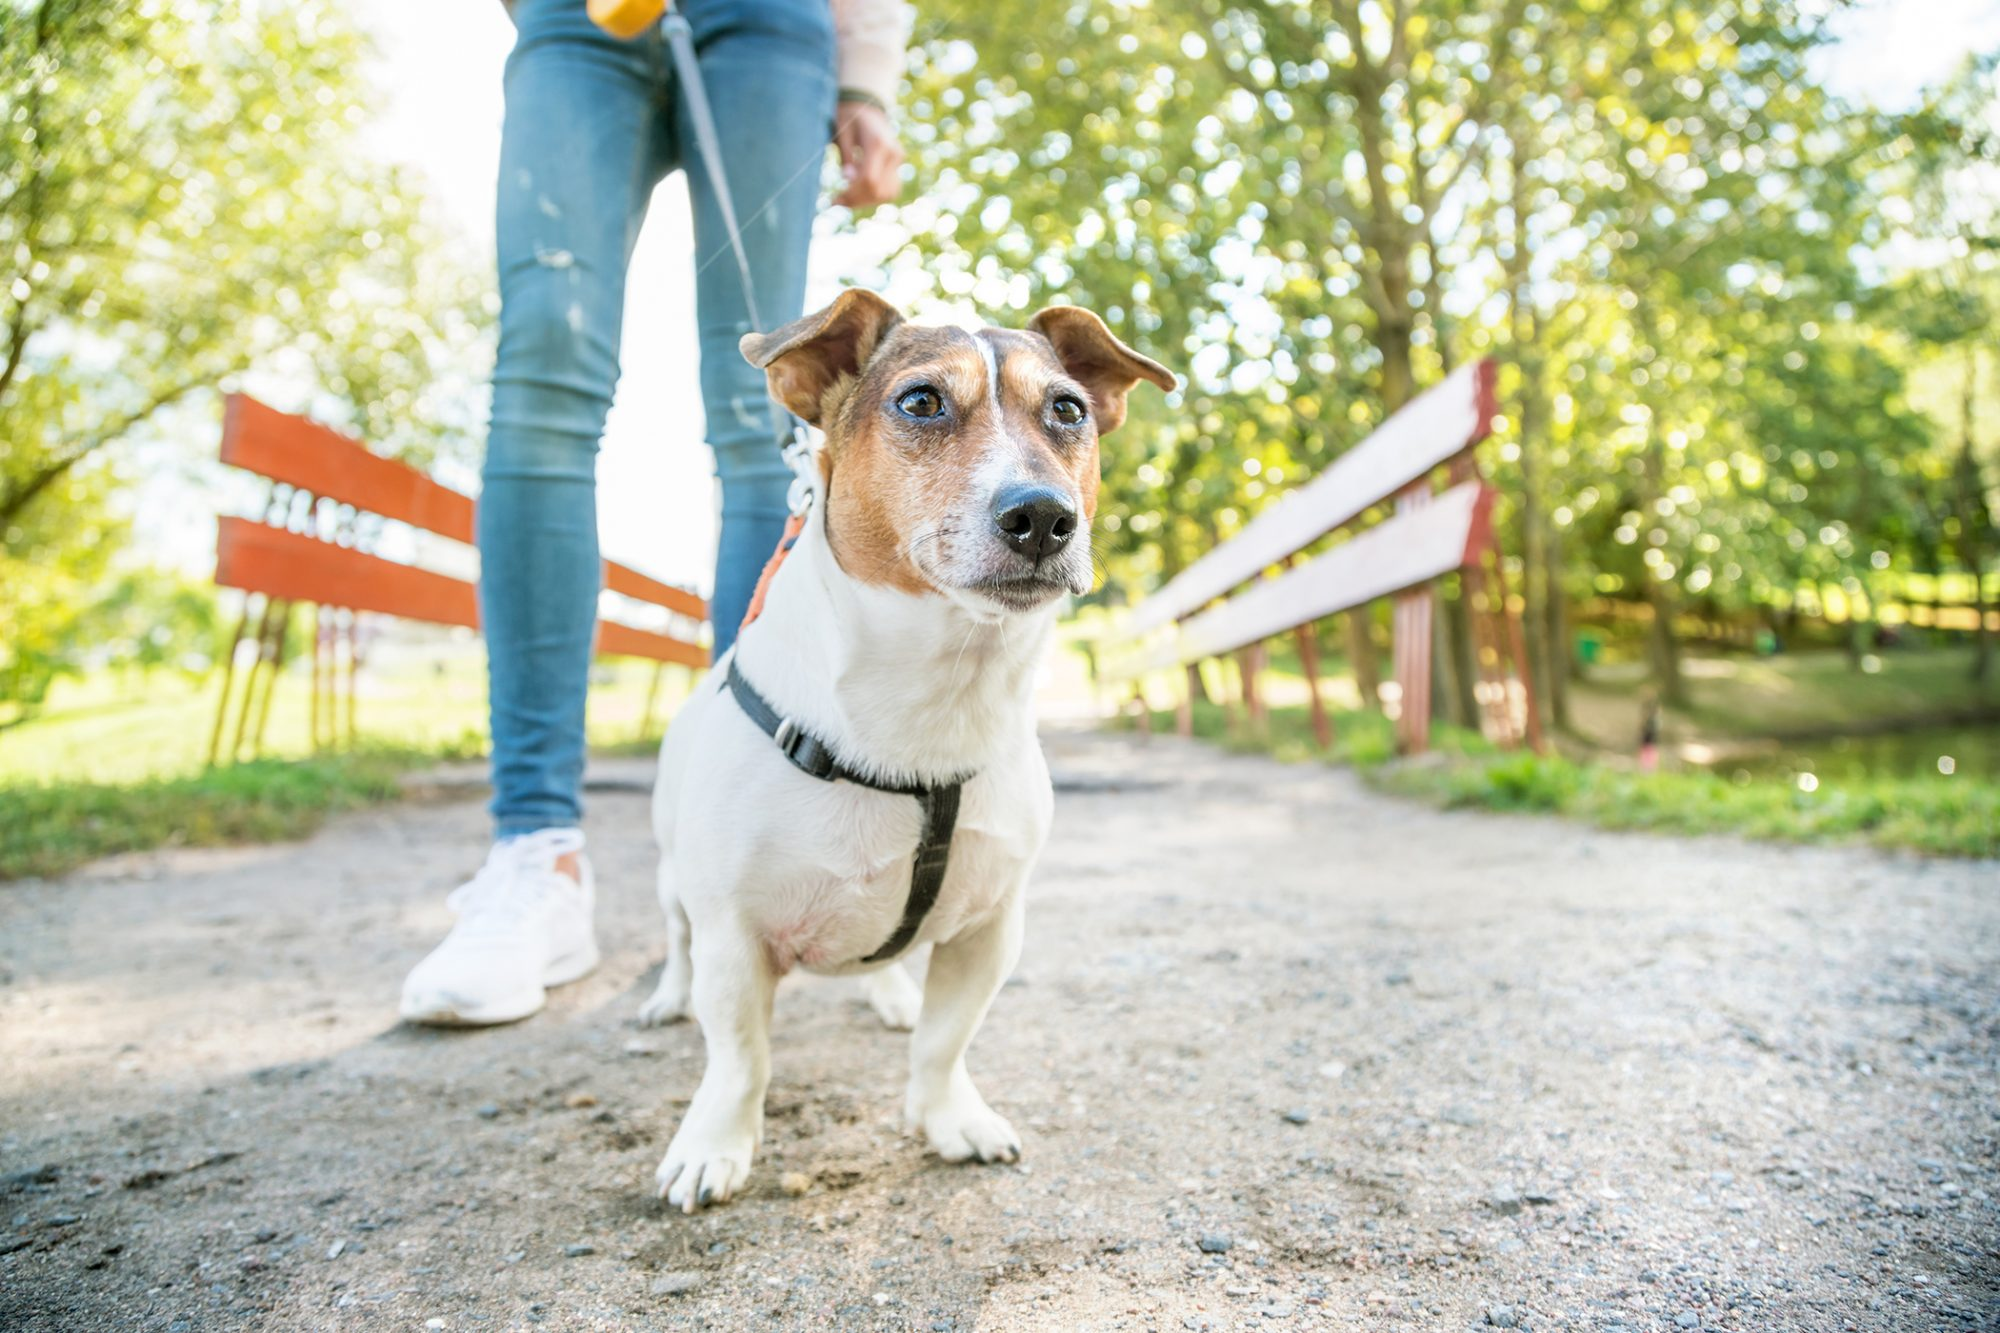 Girl walks white short-haired terrier on park path